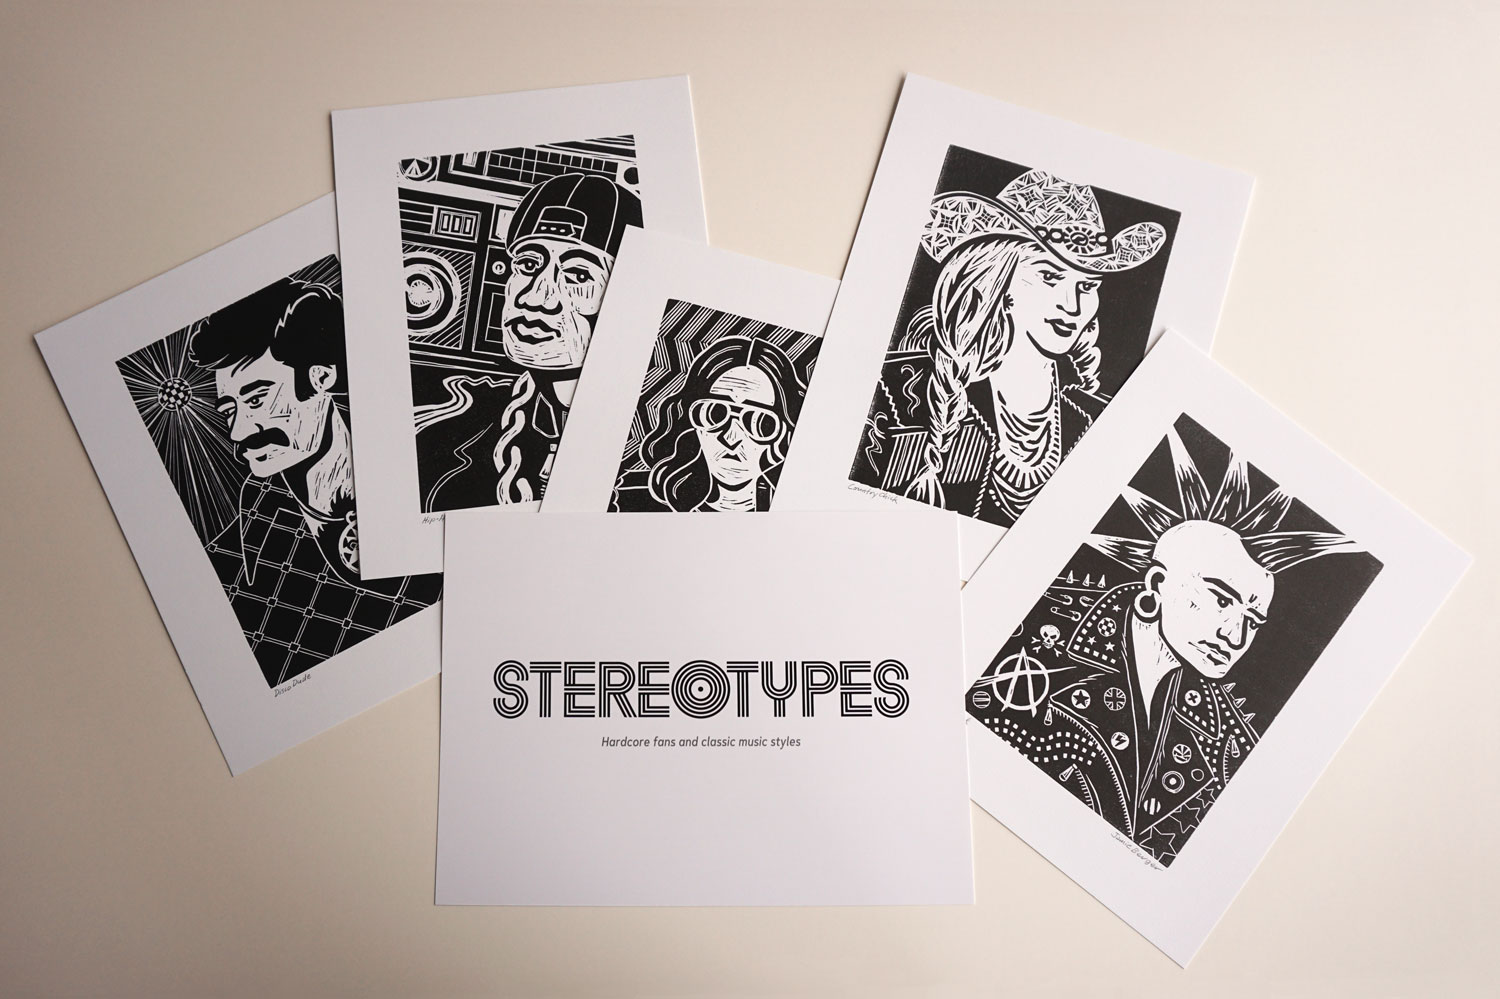 Stereotypes print series and cover sheet